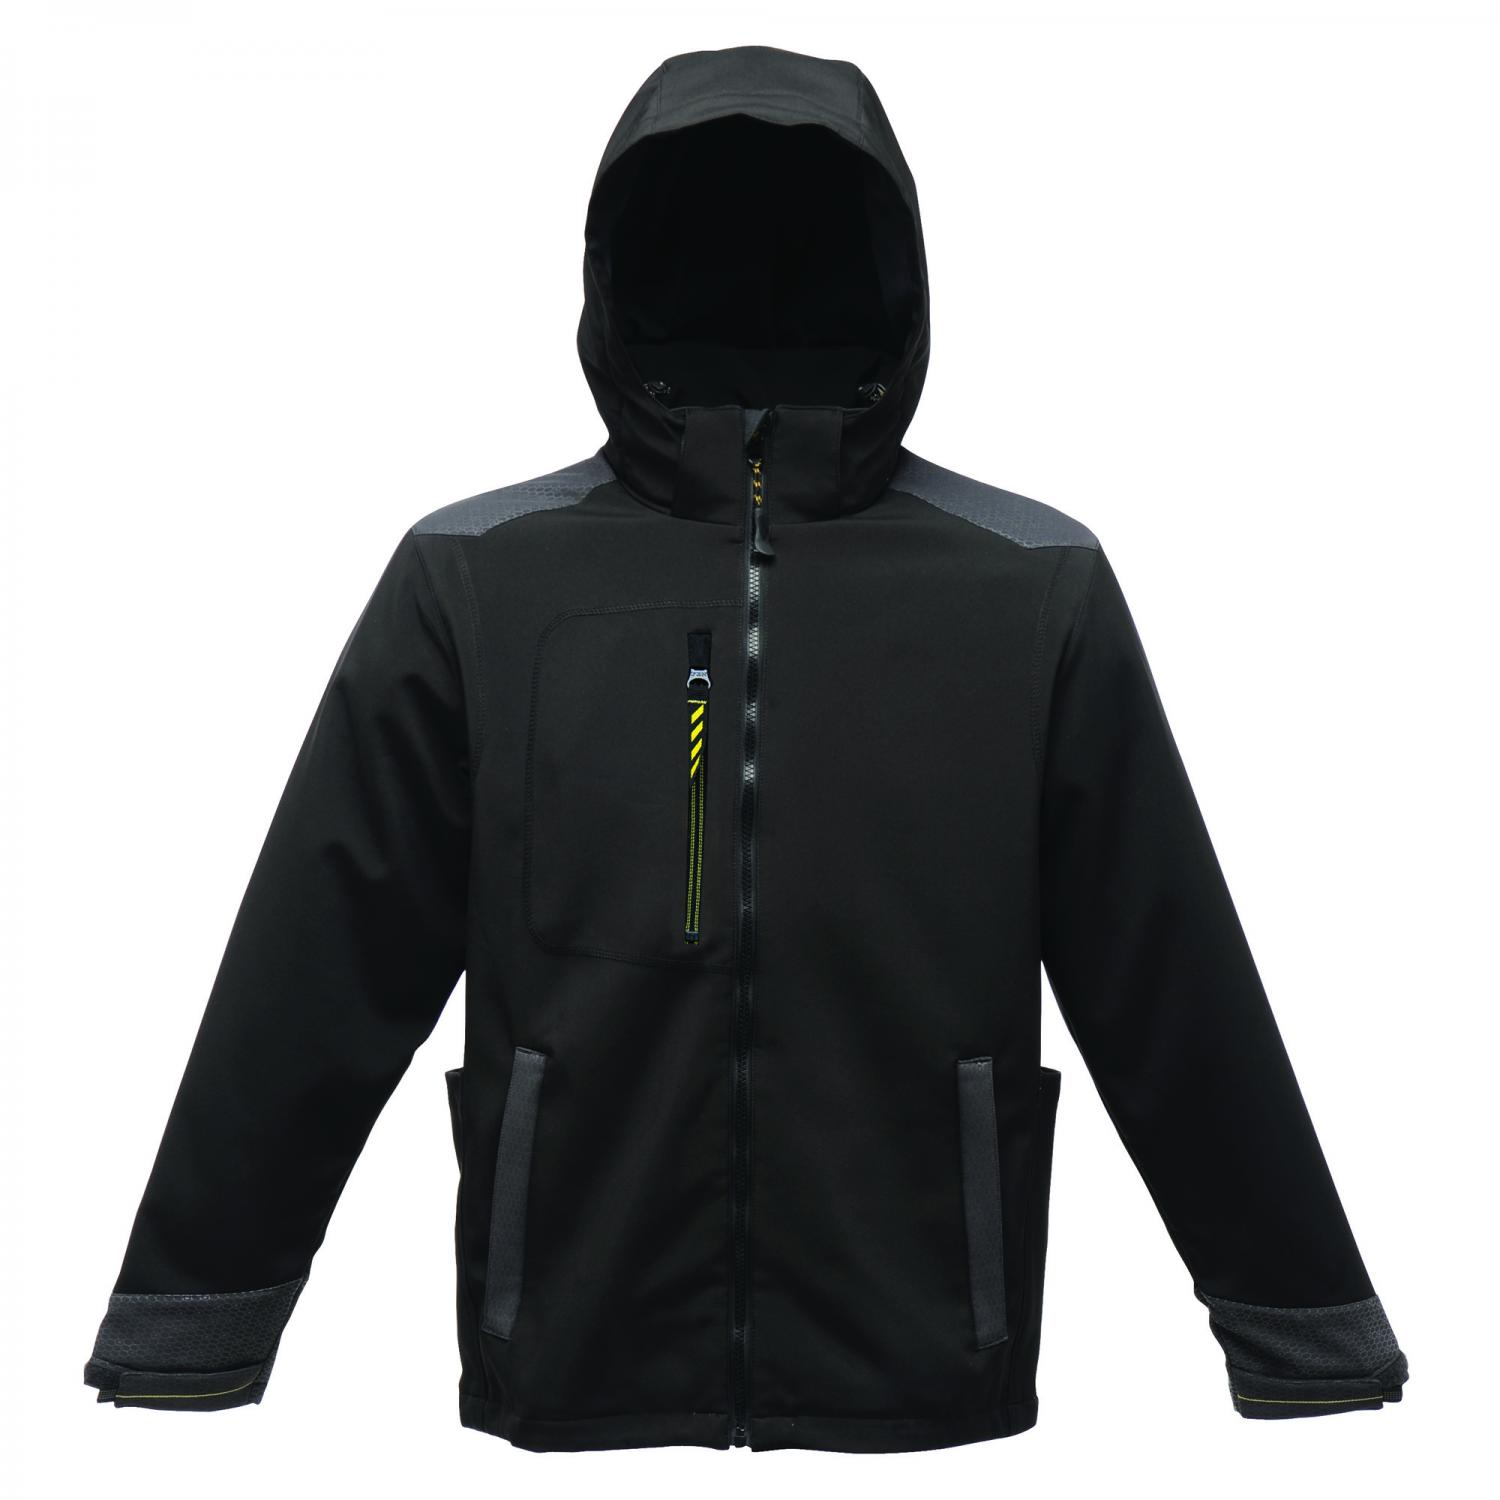 Enforcer Softshell Jacket Black